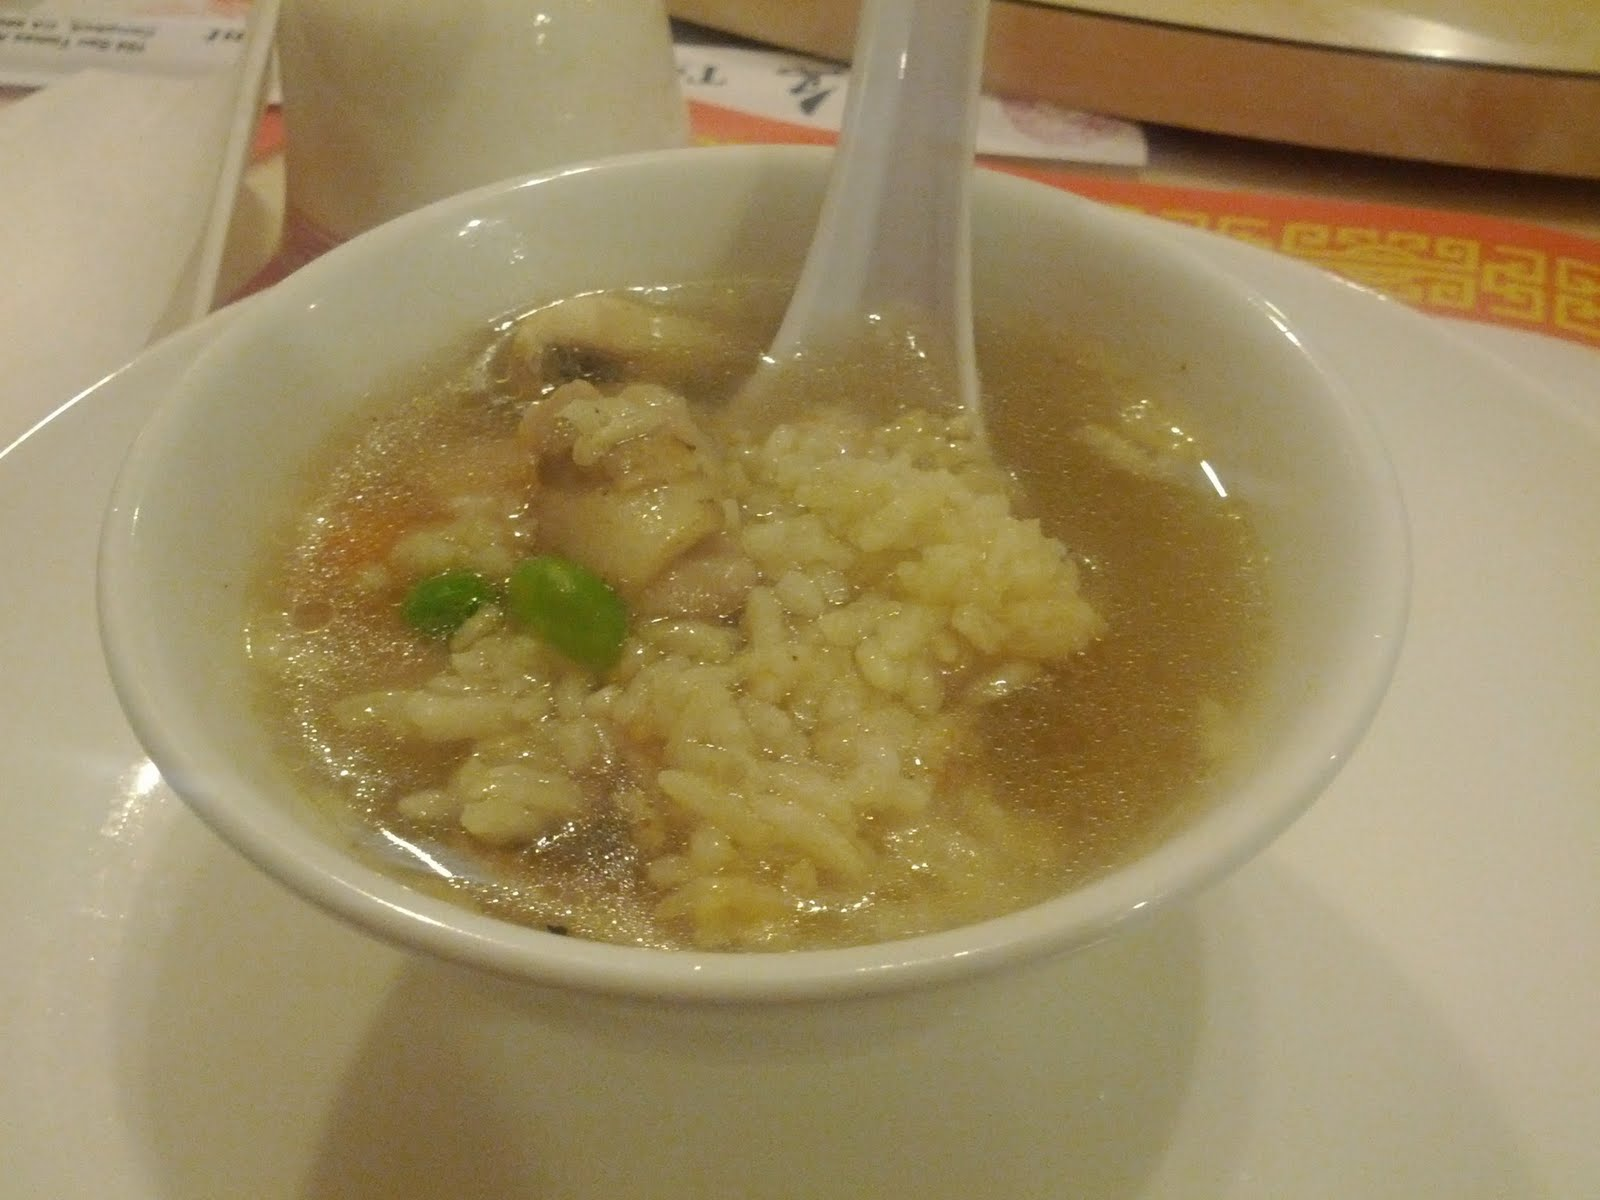 Dinner: Sizzling rice soup from Tsing Tao